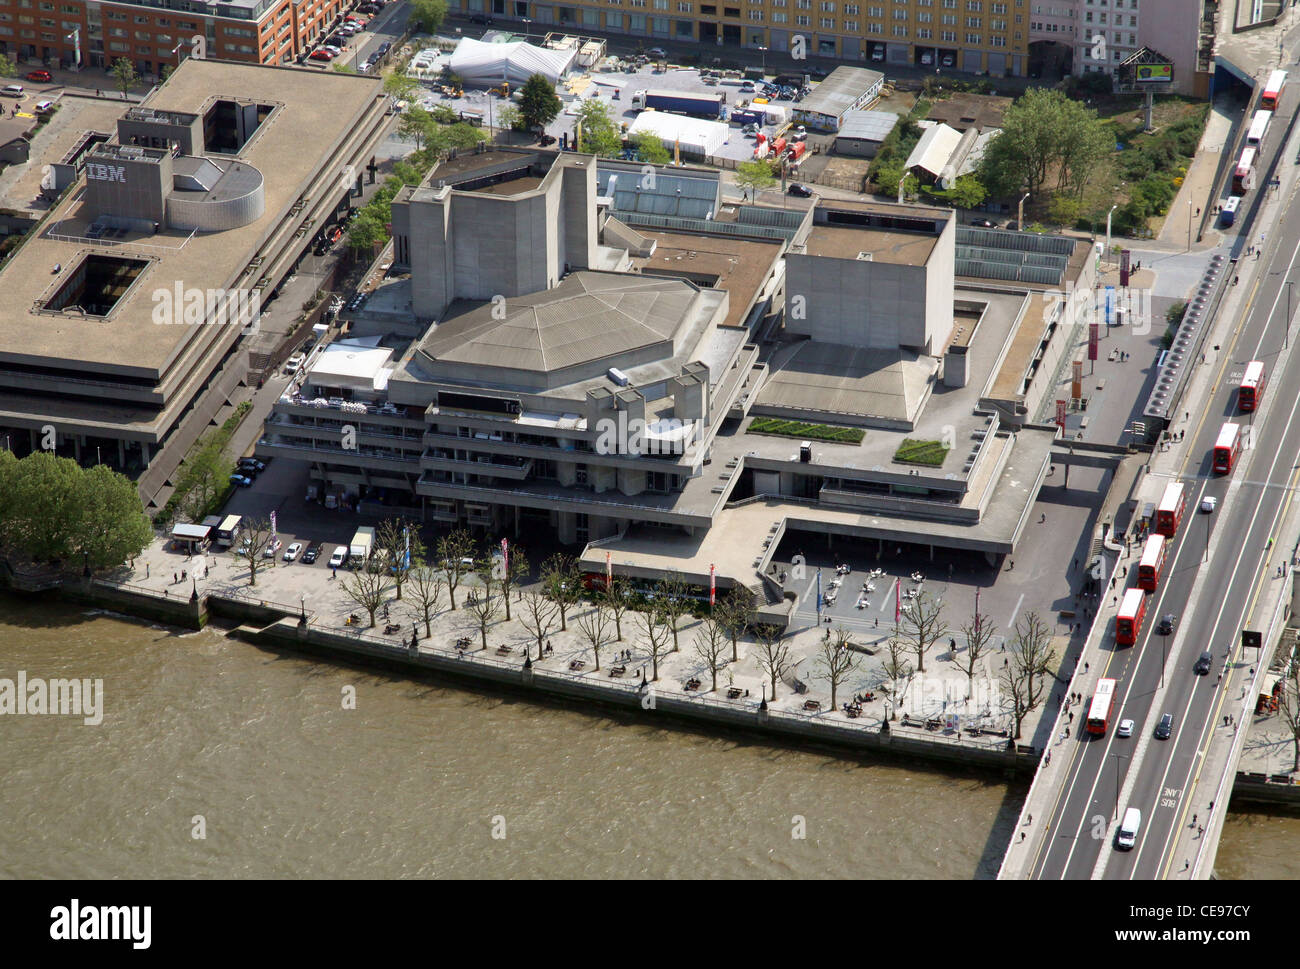 Landscapes along the south bank - Aerial Image Of The National Theatre South Bank Of The Thames London Se1